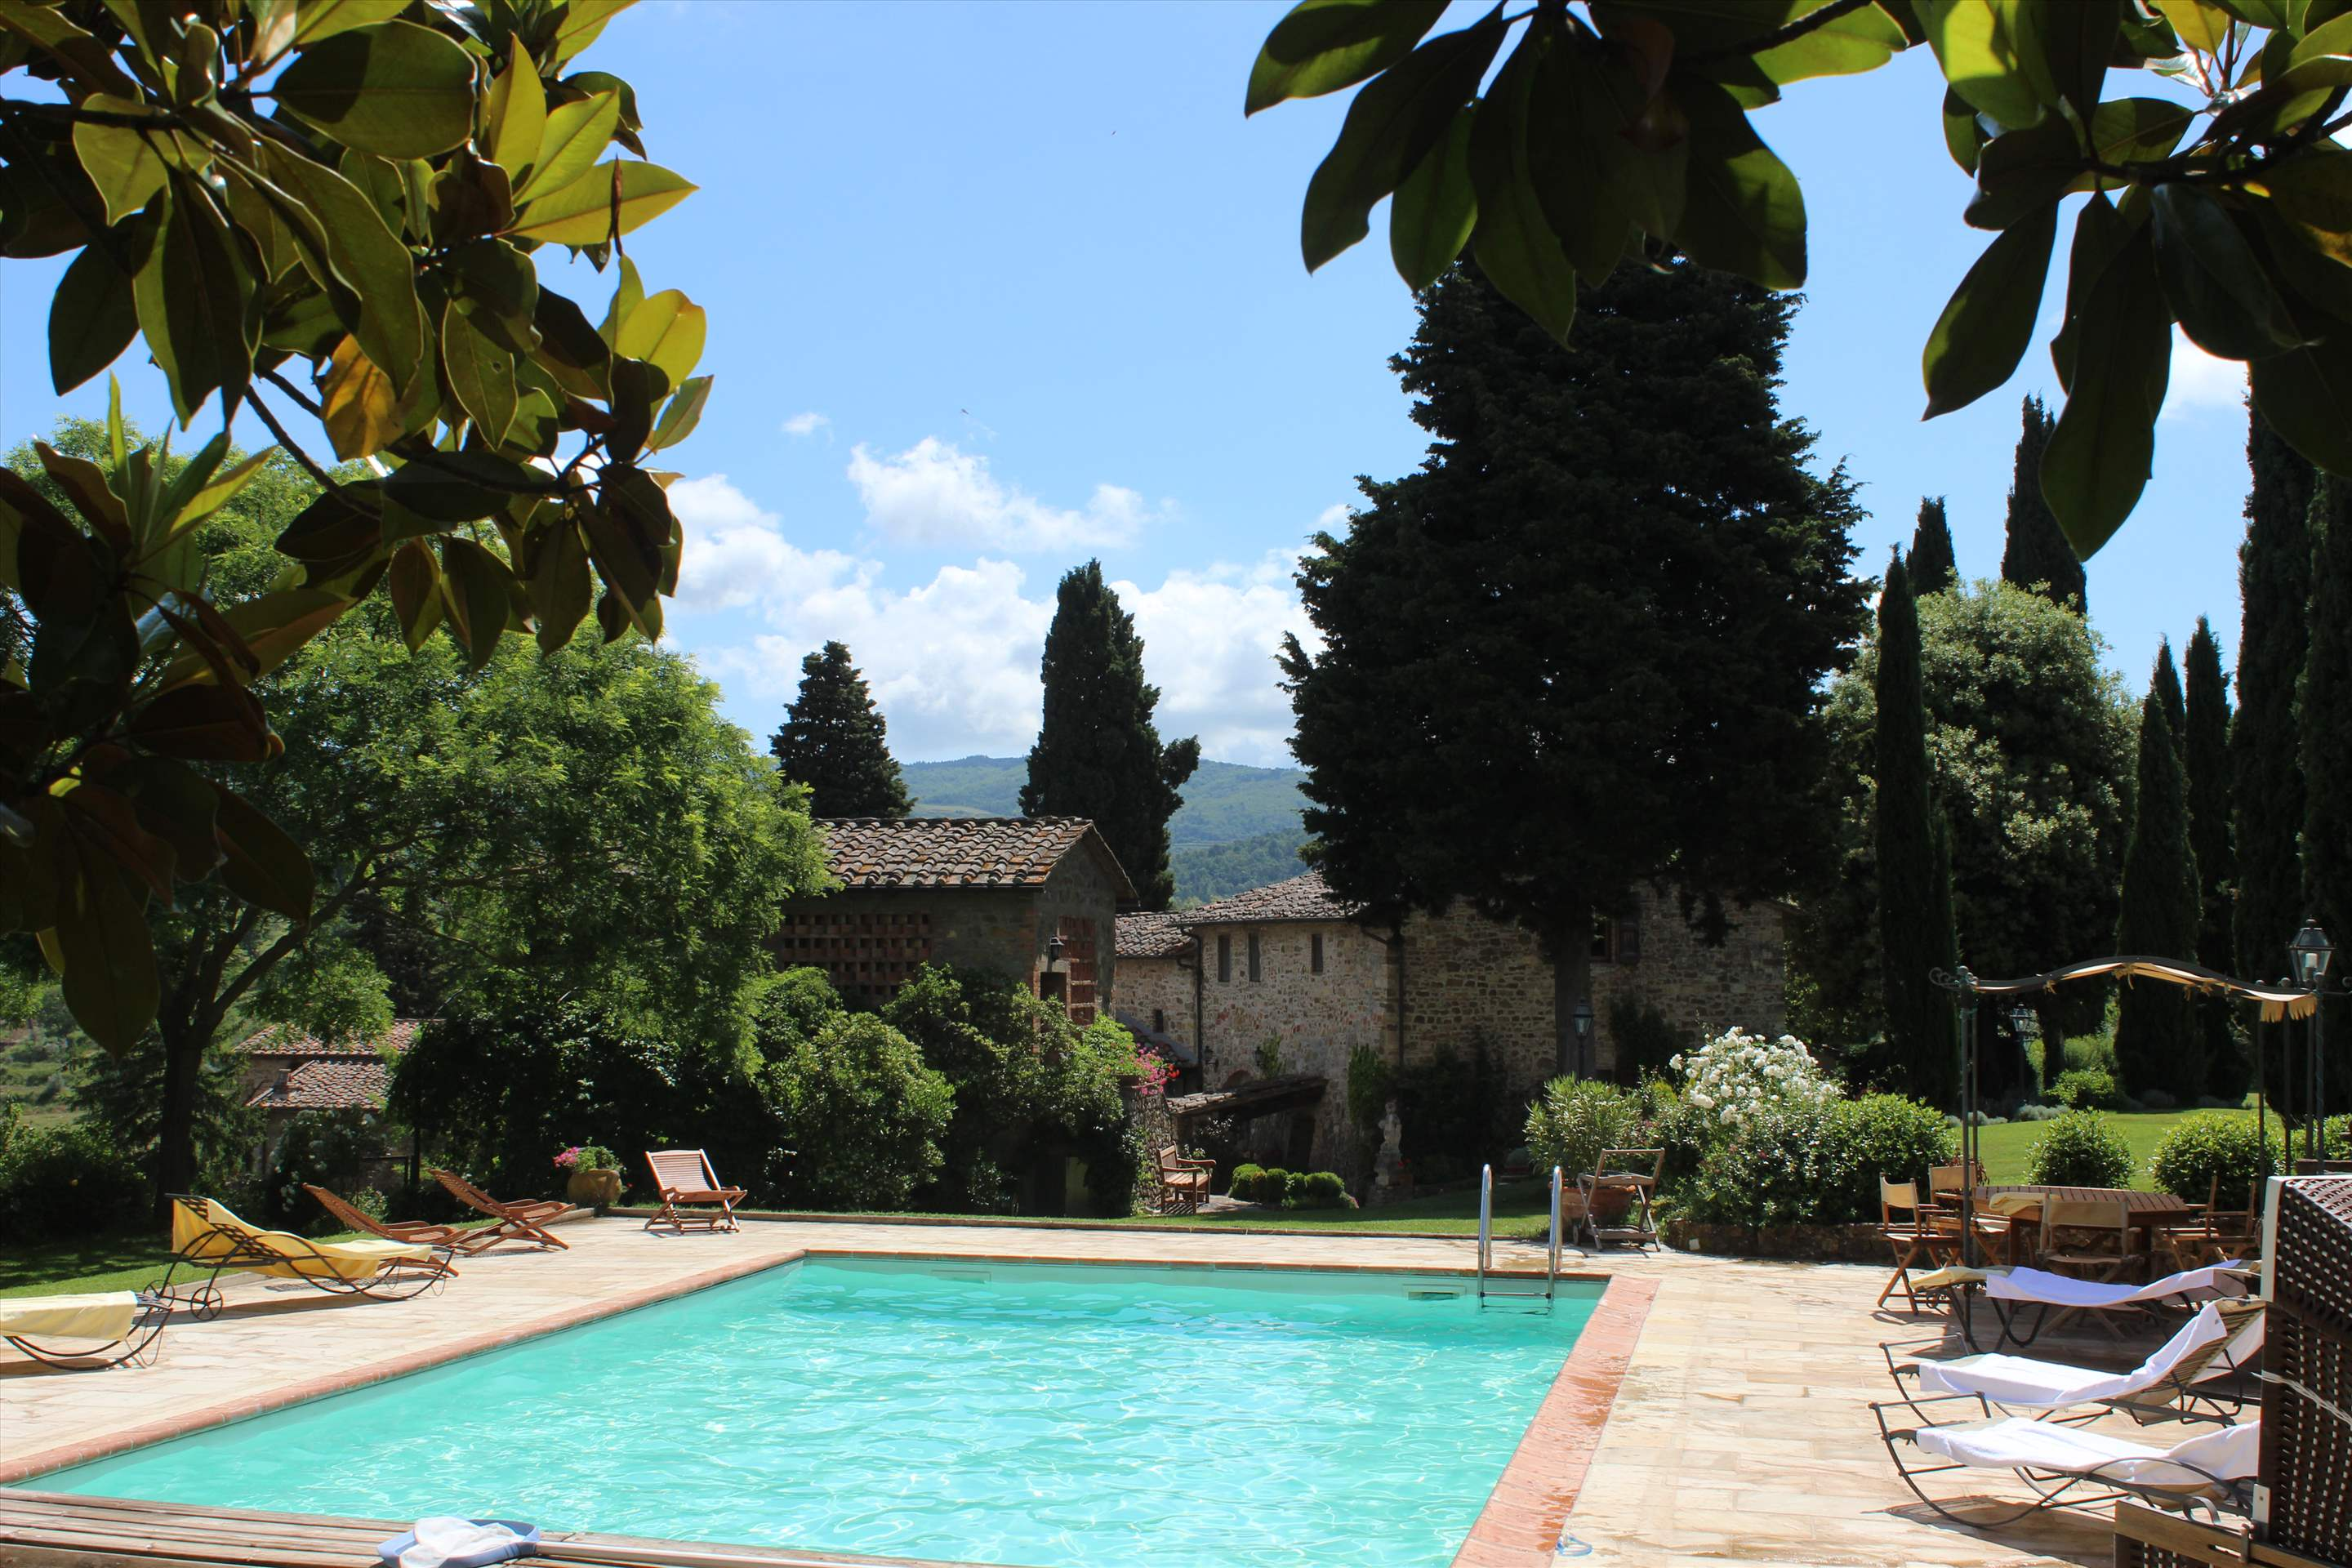 Villa Campana, 5 bedroom villa in Chianti & Countryside, Tuscany Photo #10